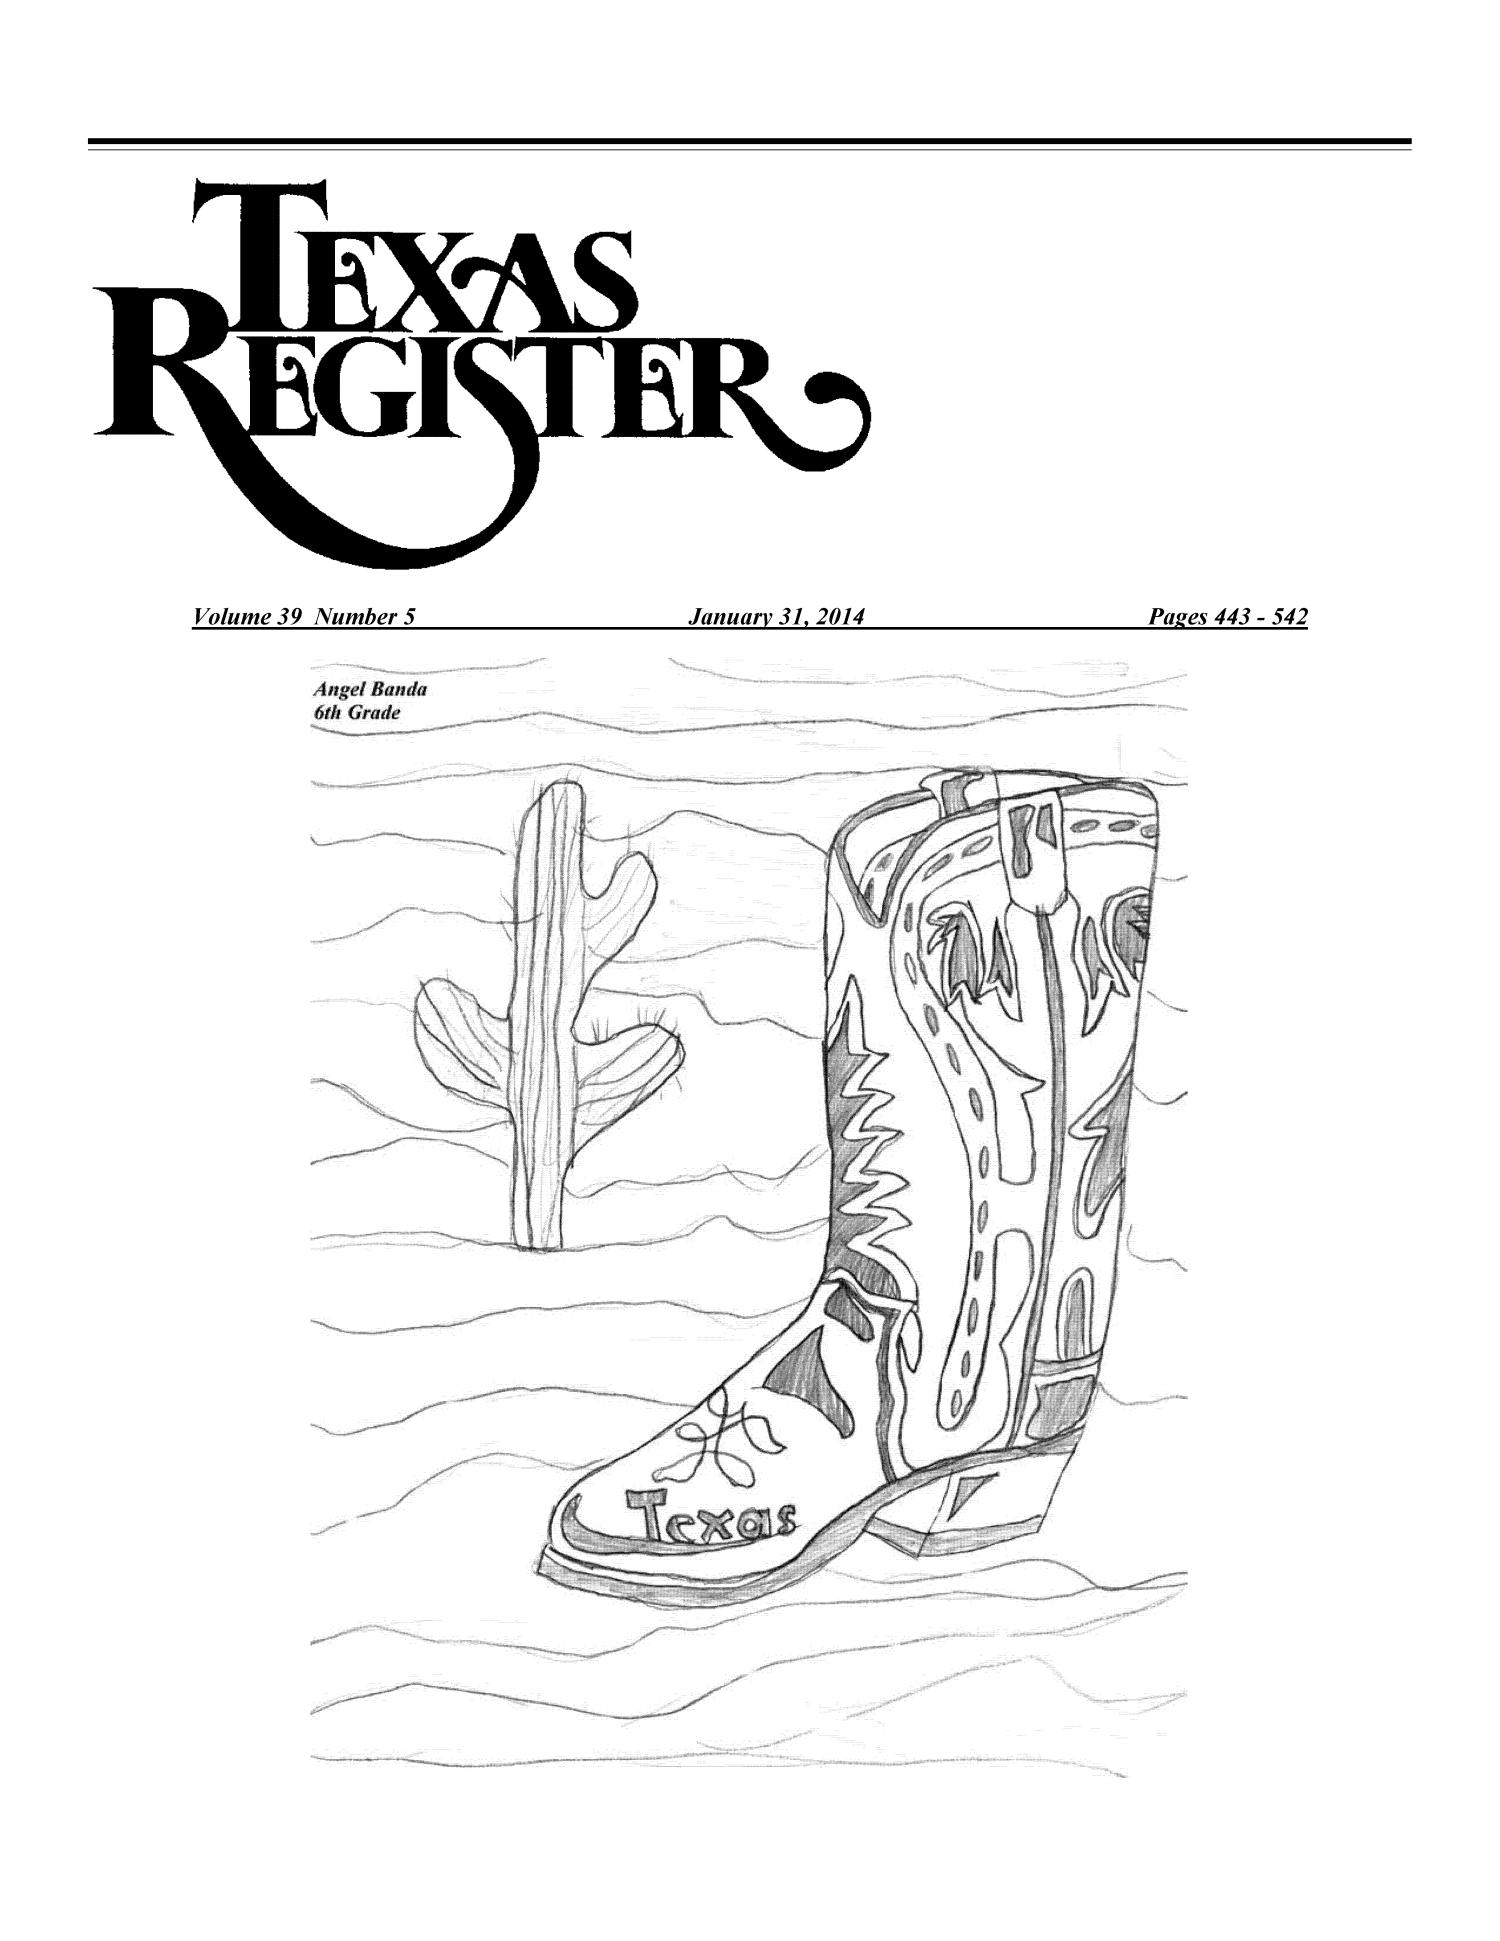 Texas Register, Volume 39, Number 5, Pages 443-542